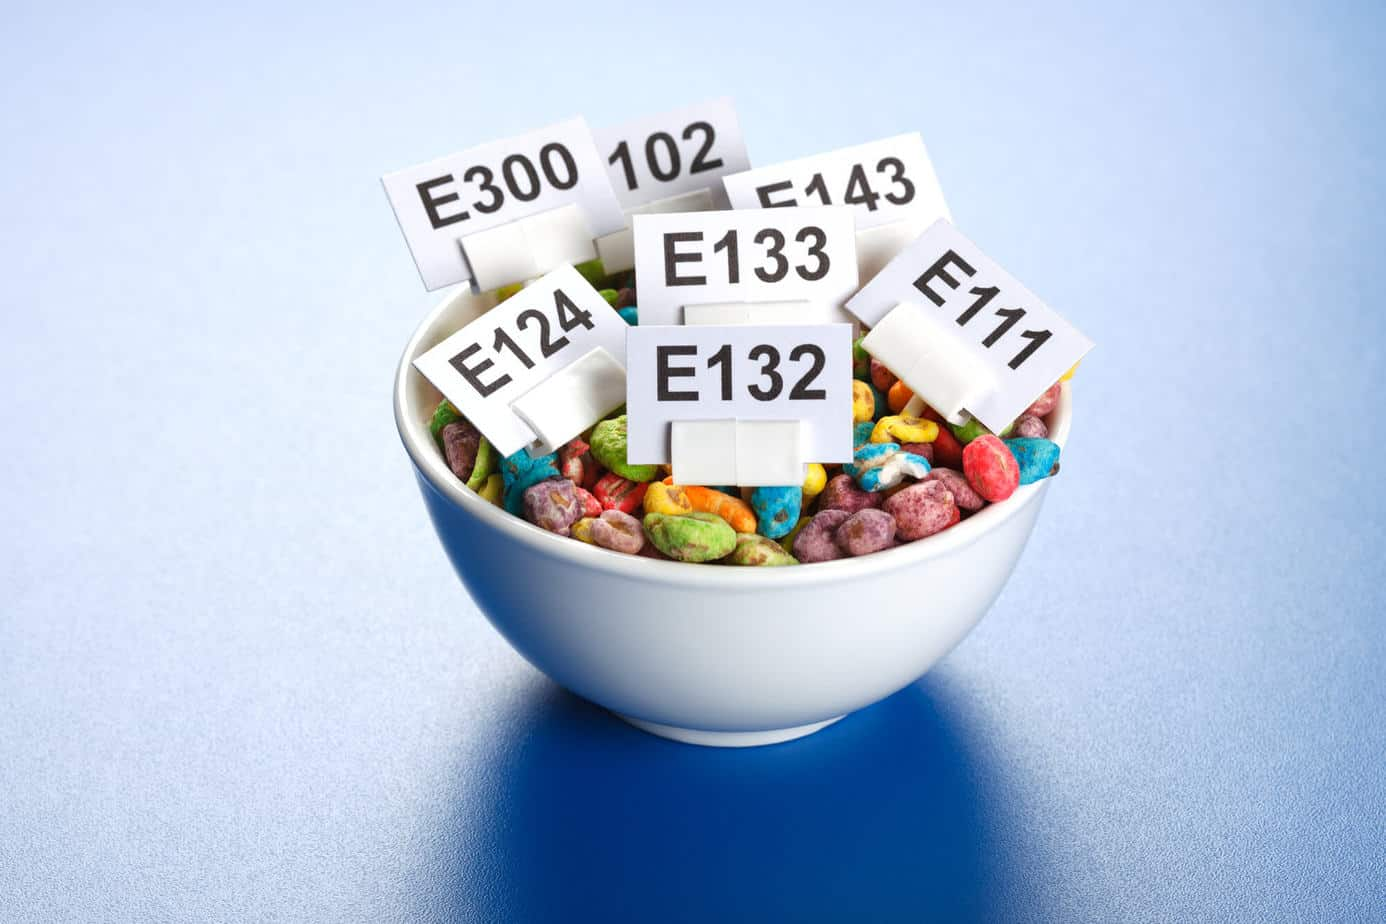 Food additives can harm your gut health.